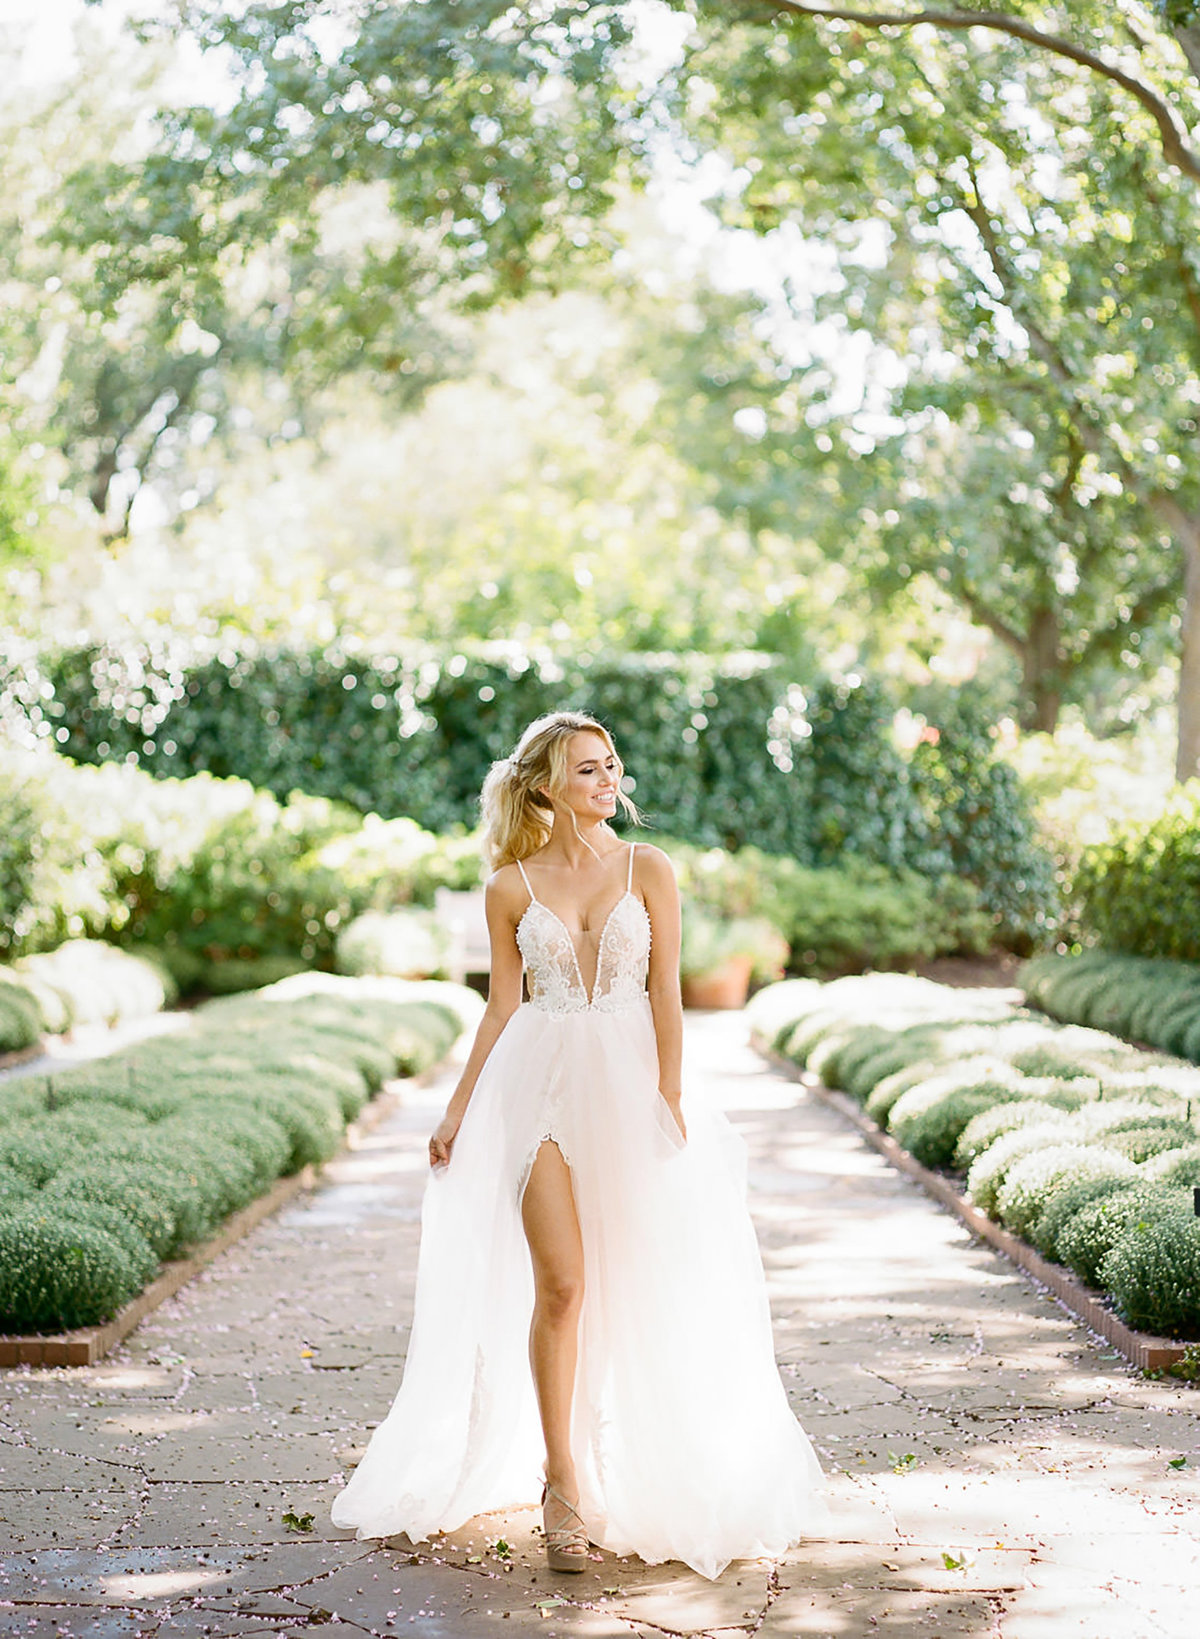 bride blonde wedding dress Dallas arboretum